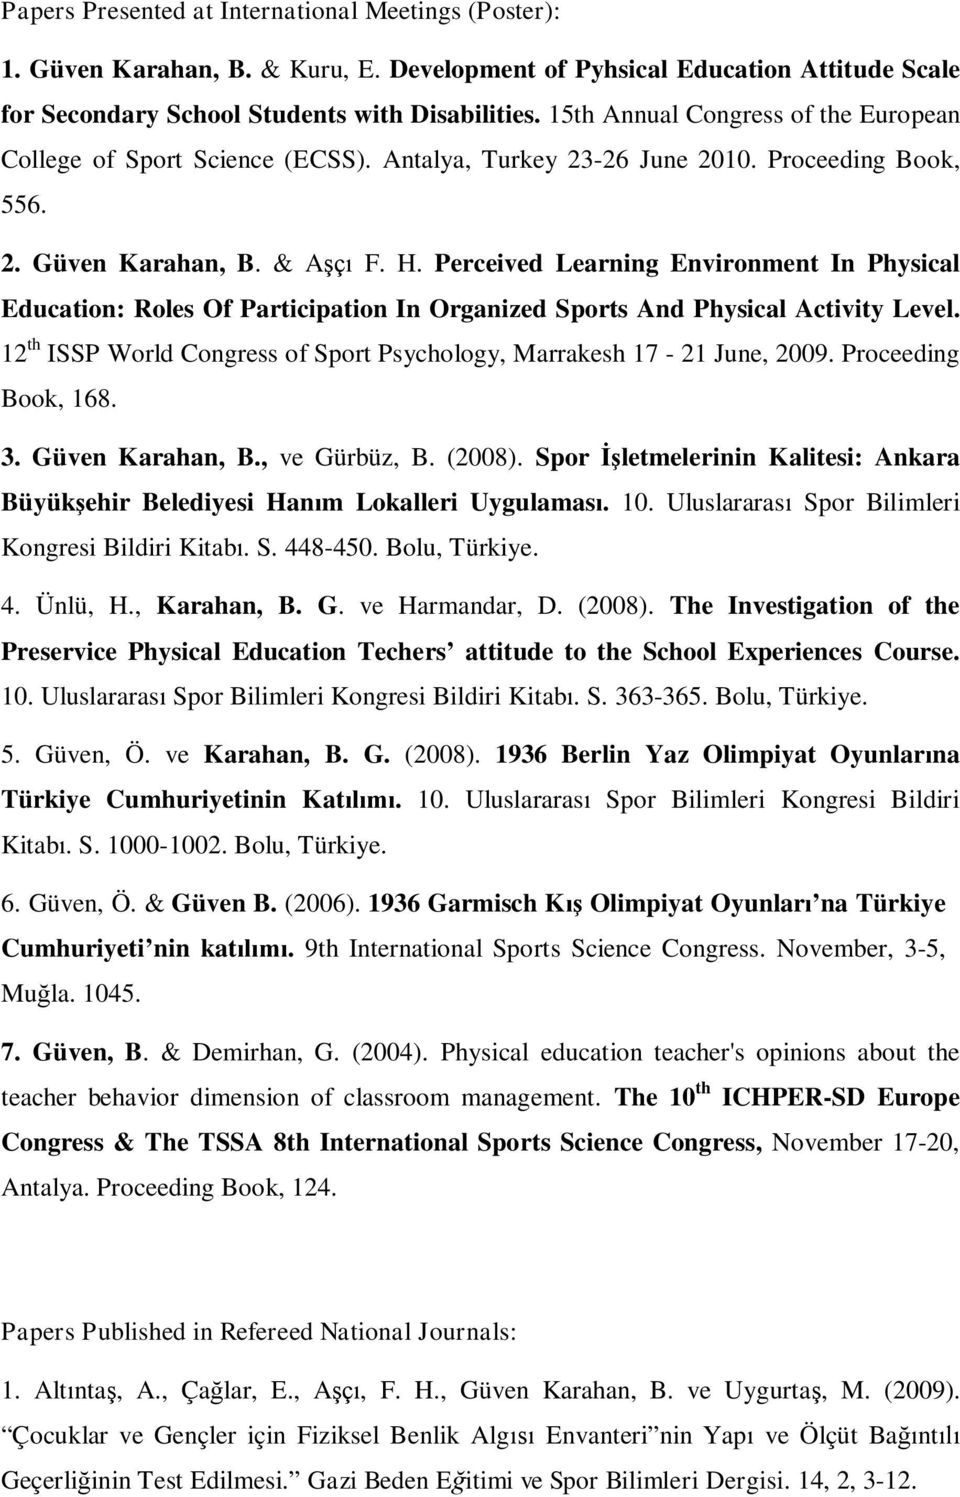 Perceived Learning Environment In Physical Education: Roles Of Participation In Organized Sports And Physical Activity Level. 12 th ISSP World Congress of Sport Psychology, Marrakesh 17-21 June, 2009.